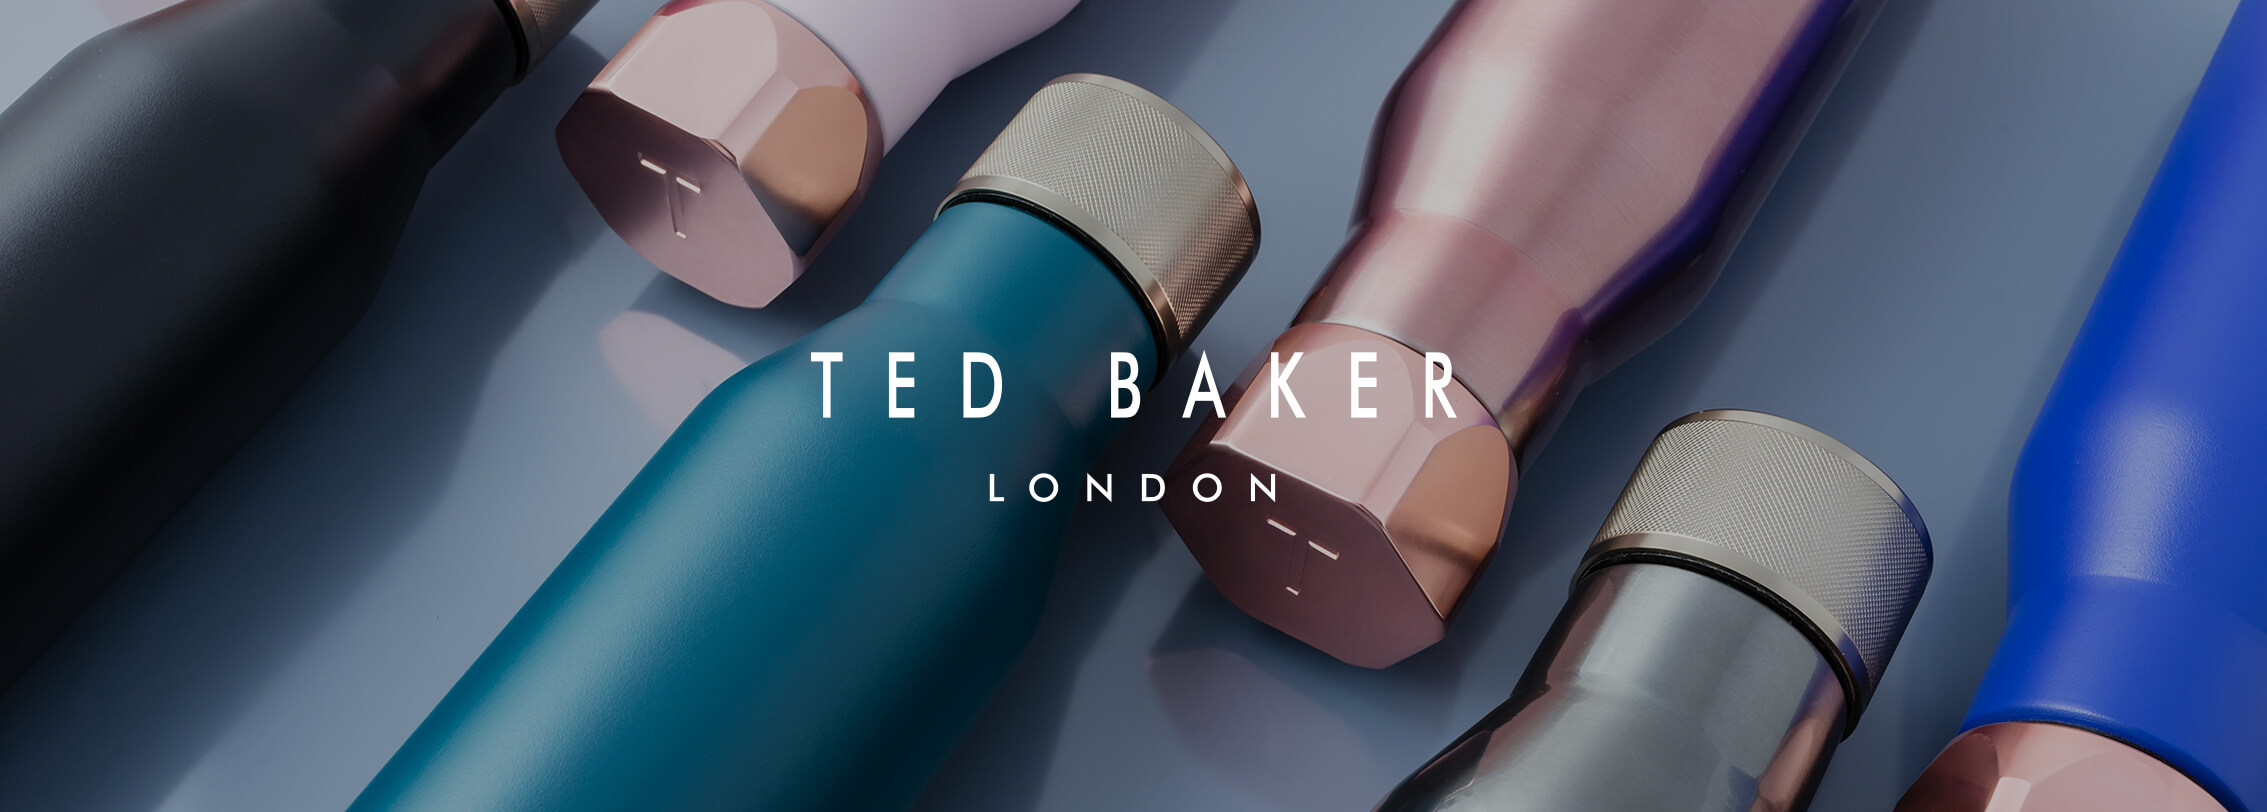 Ted Baker for all